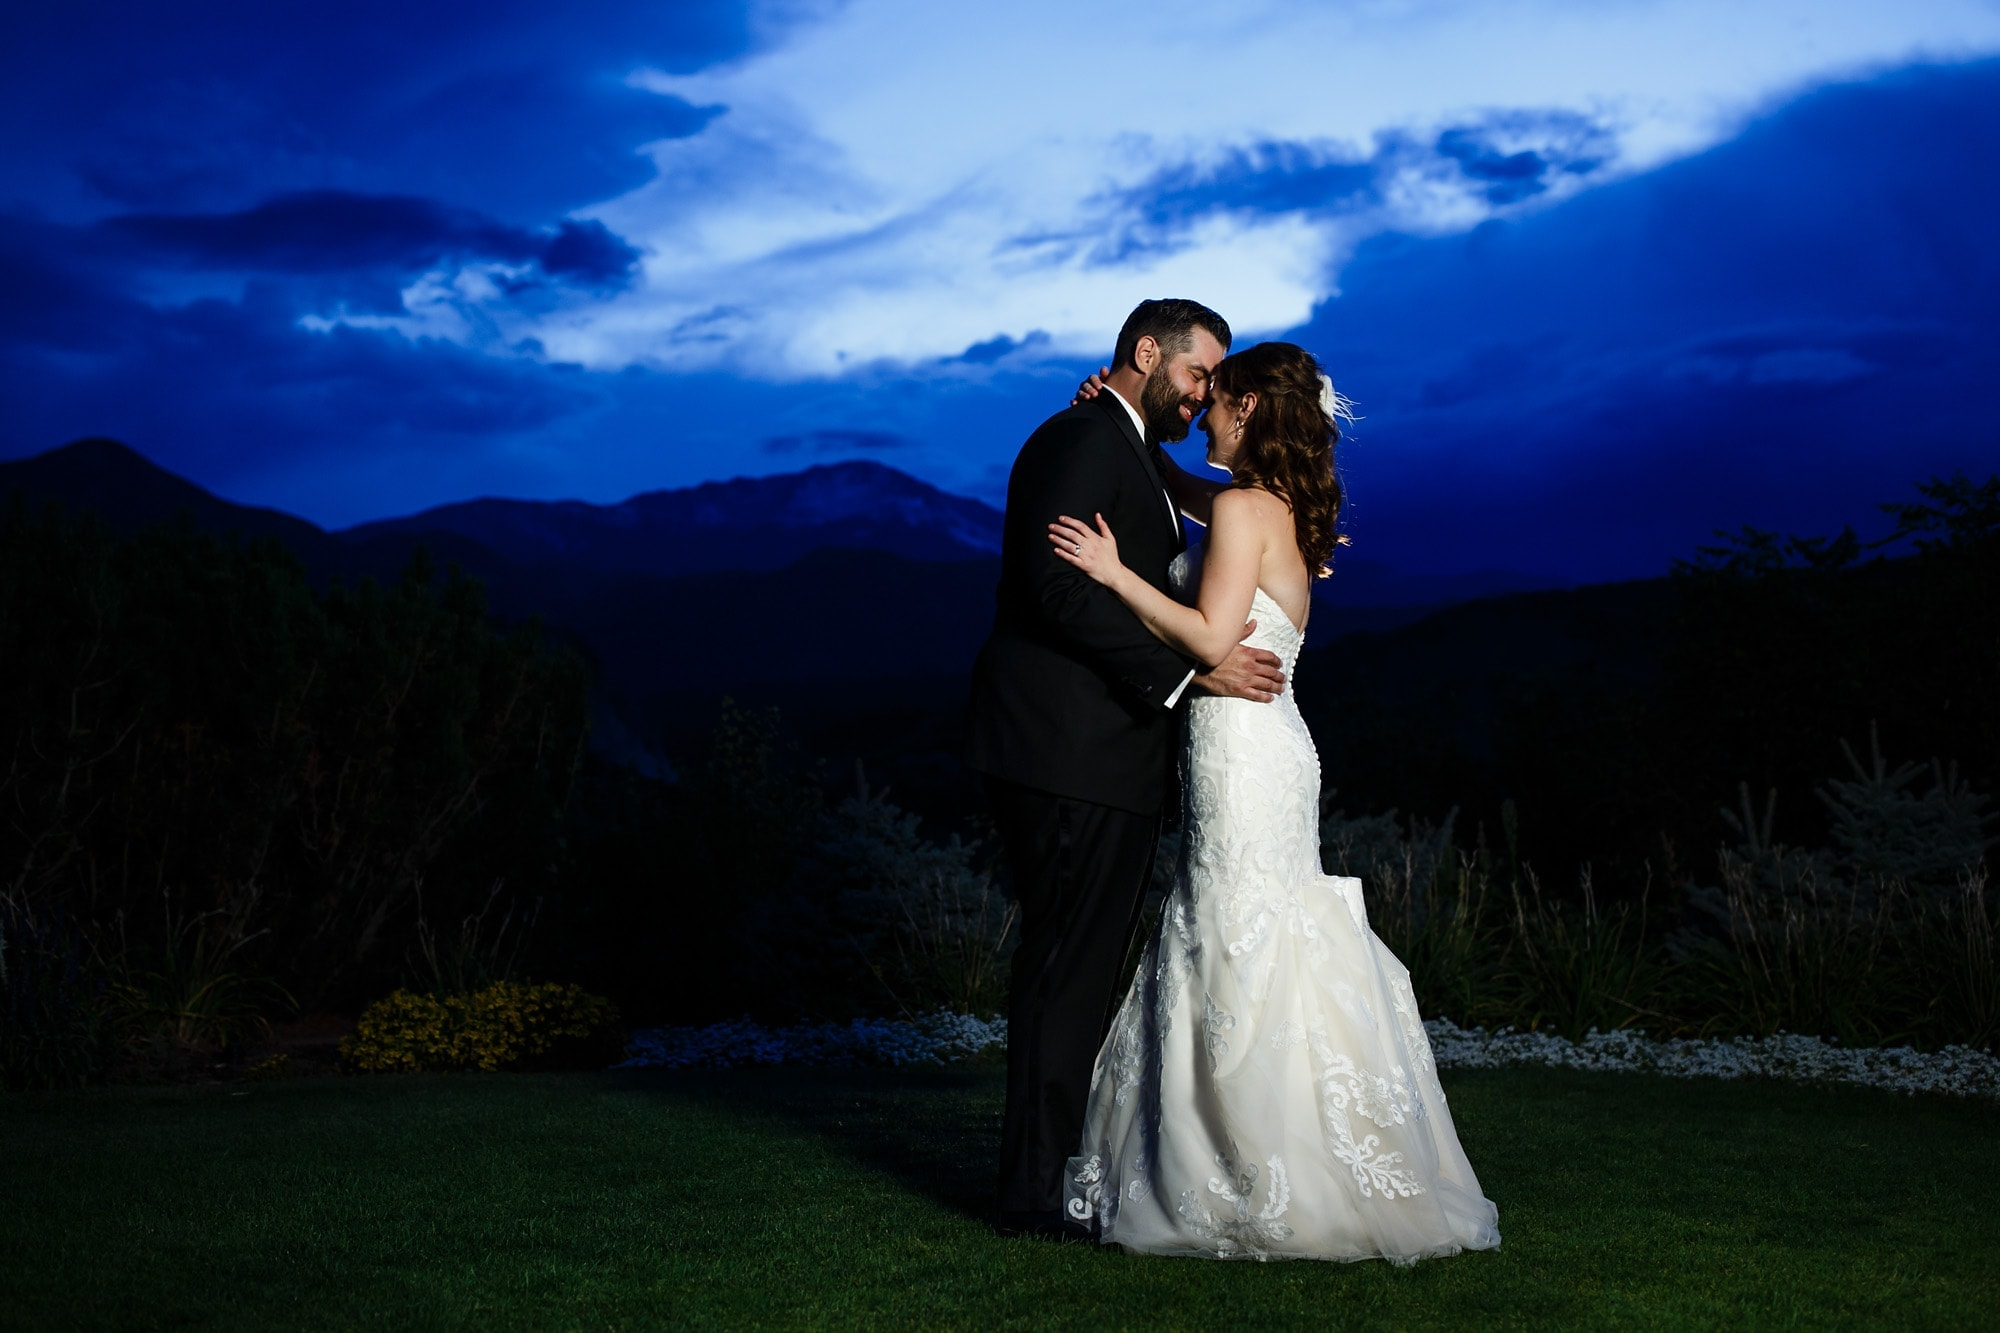 Devan and Joshua share a moment togehter outsude during twilight in front of Pikes Peak during their wedding at Garden of the Gods Club